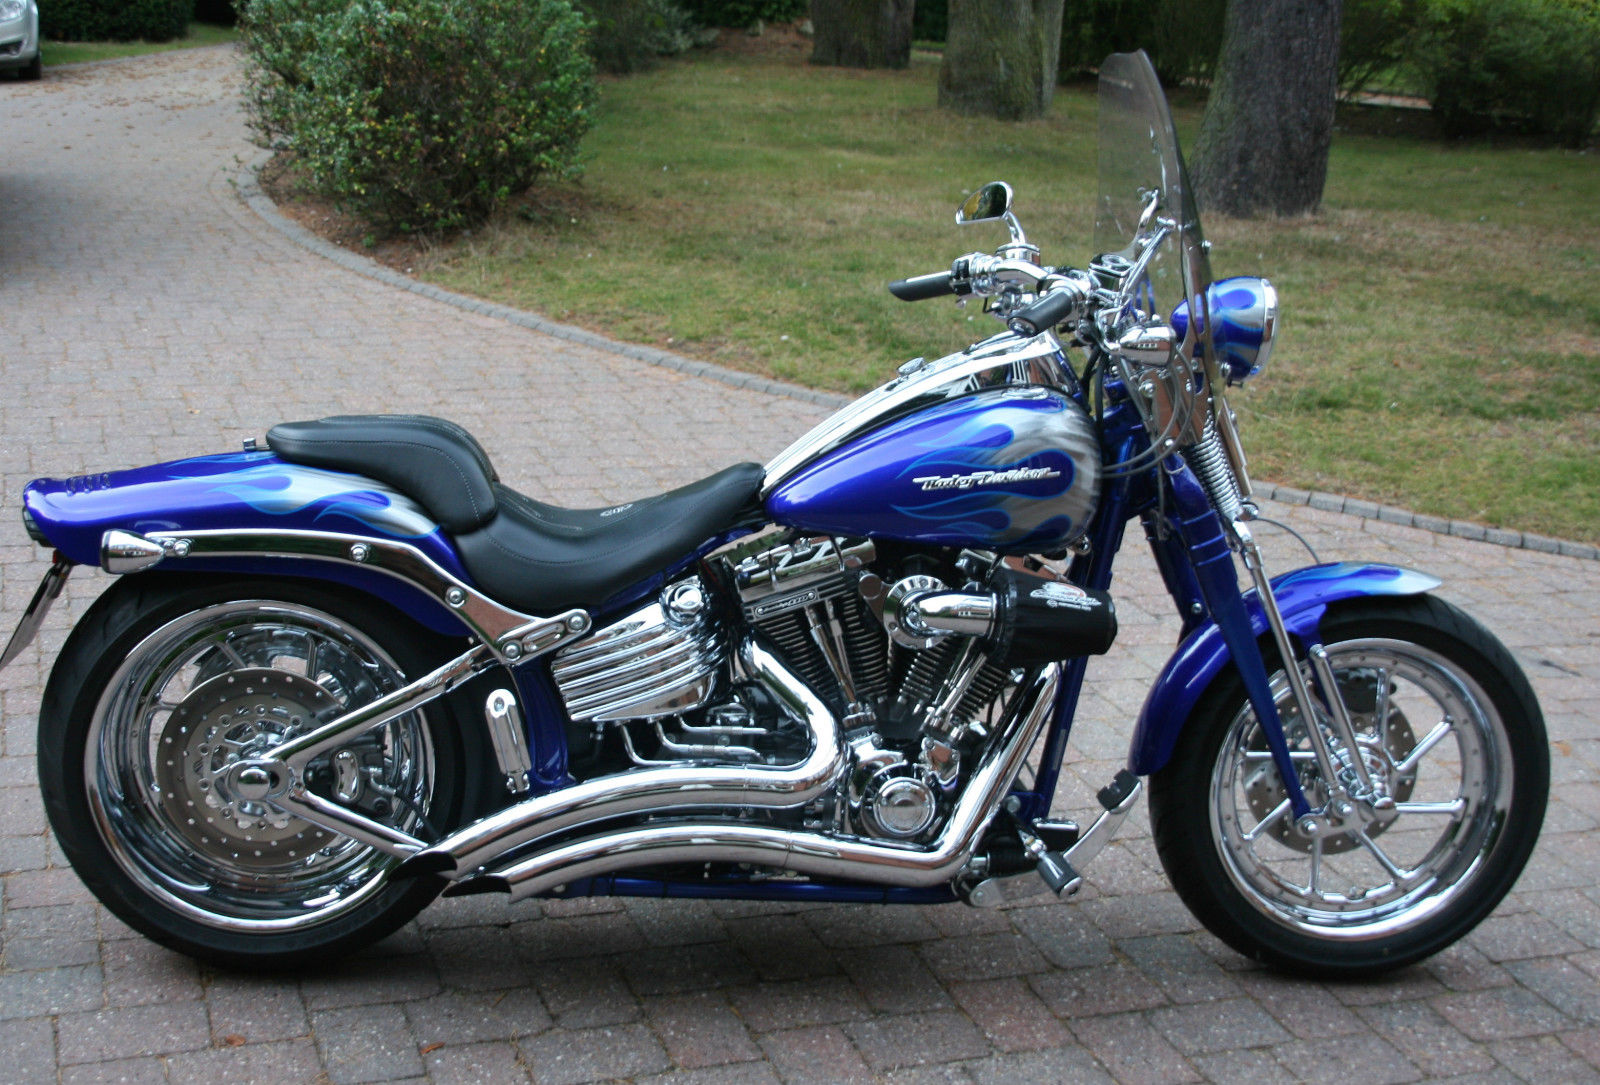 Carmax Buy Motorcycles >> Bmw Motorcycles For Sale Used Motorcycles Used Harleys | Upcomingcarshq.com